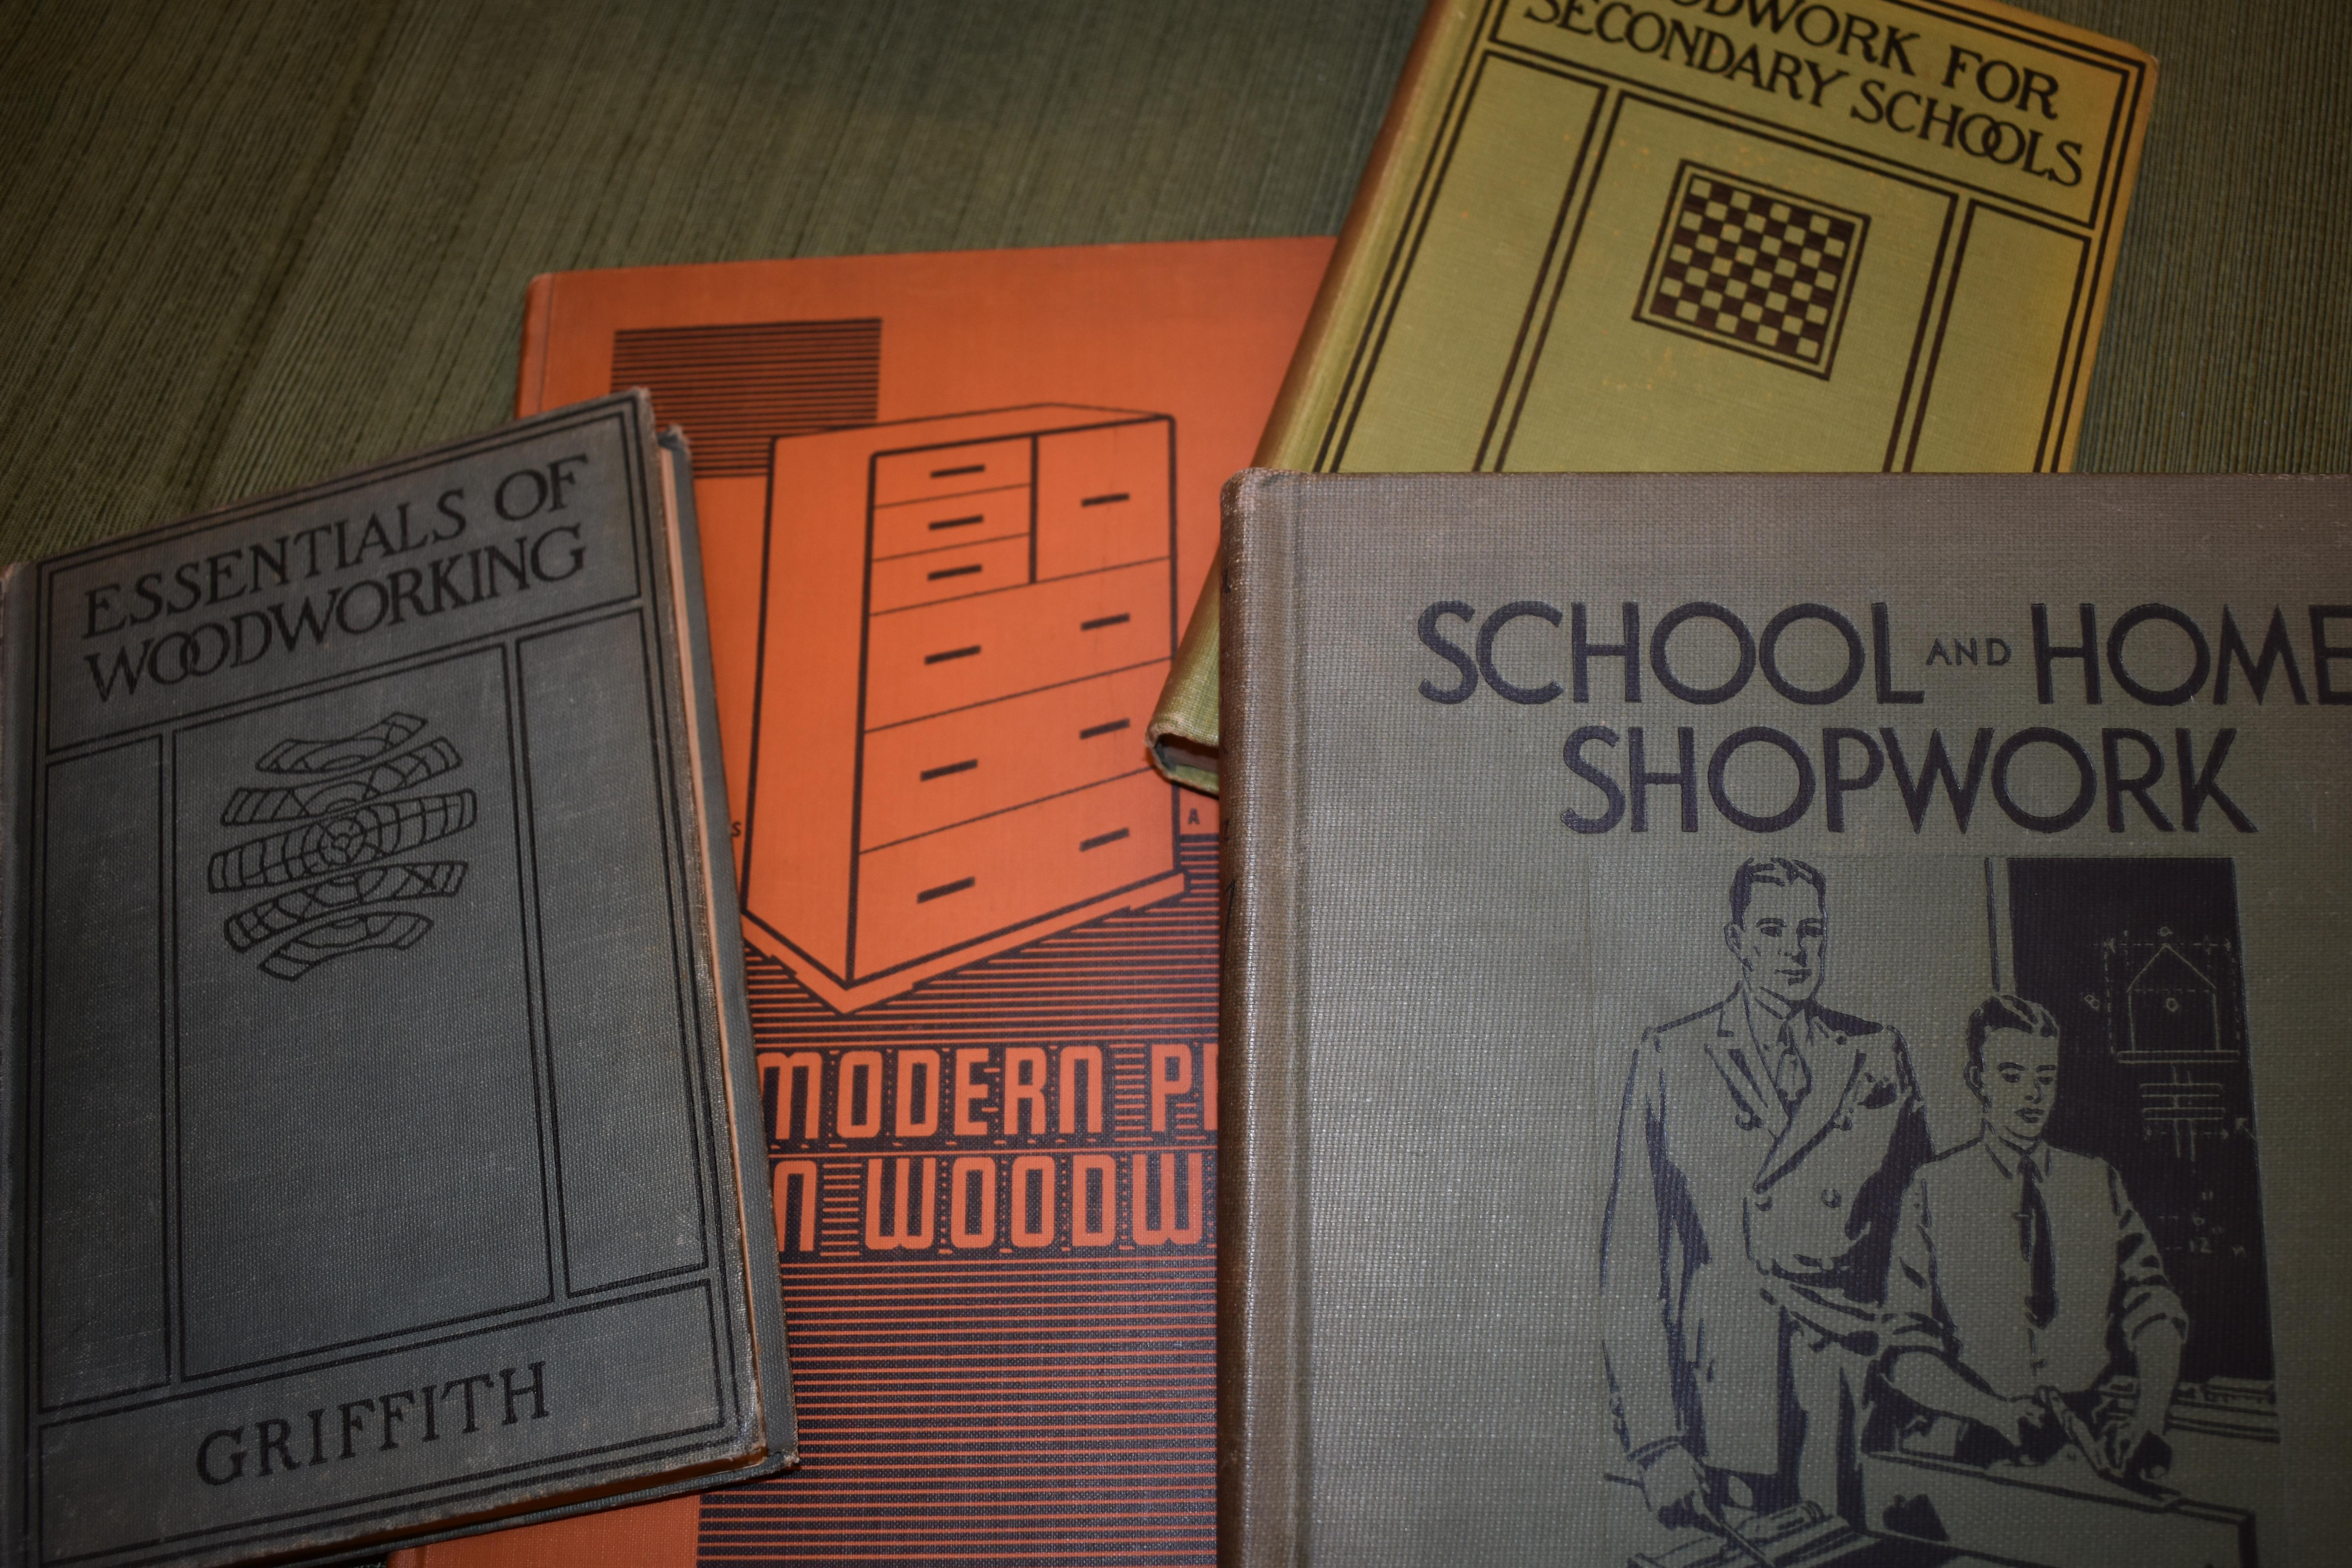 Woodworking textbooks used by Gustav Mellquist to teach manual arts in the Cleveland, Ohio public schools between 1915 and 1930. Photo by Maureen Flanagan Battistella